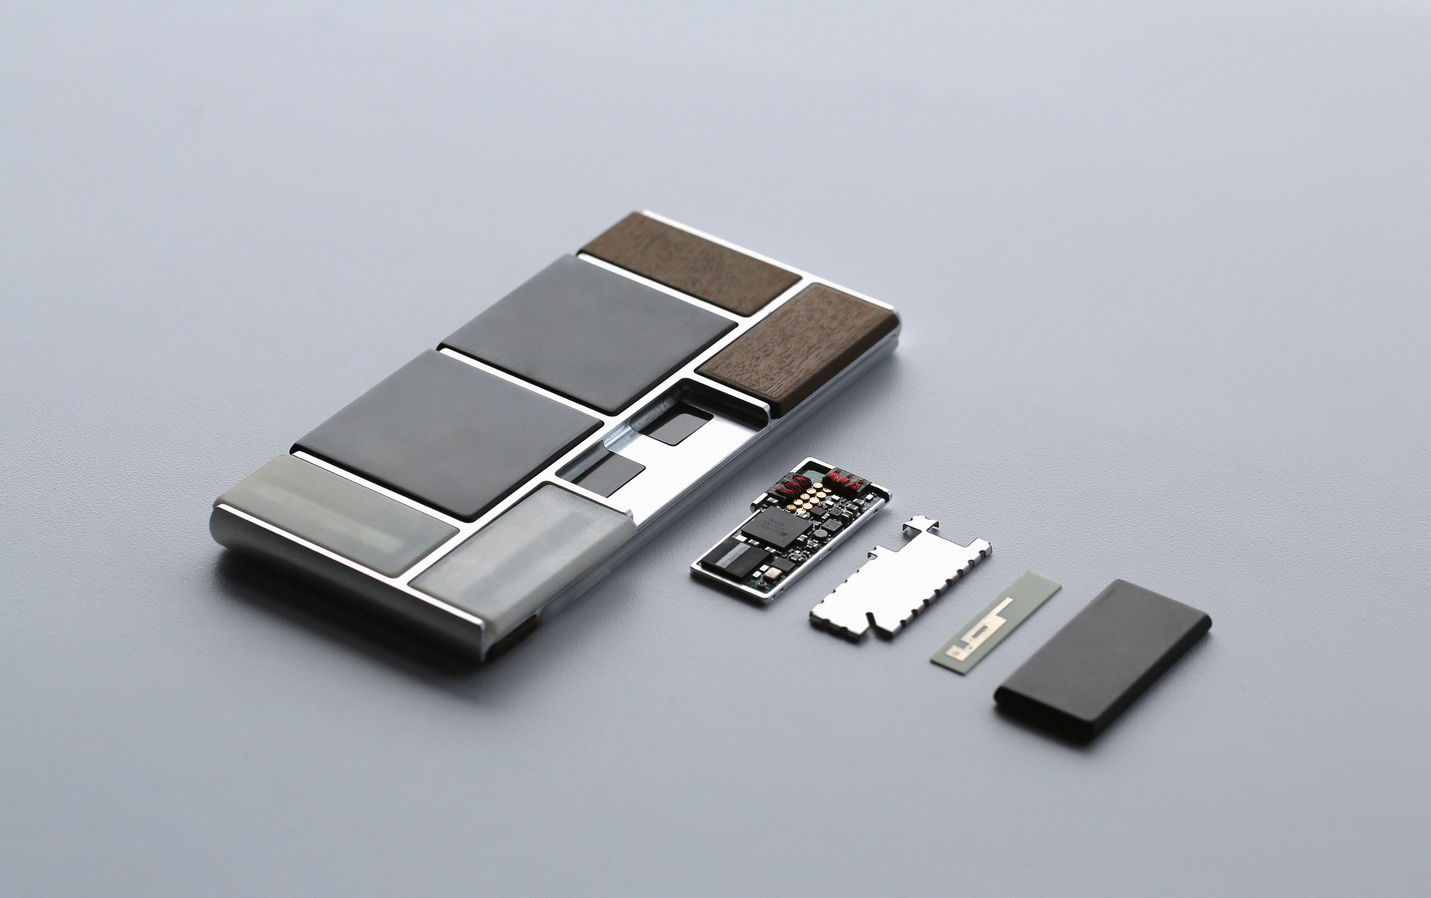 Google kicking off $100K Project Ara developer challenge to help.